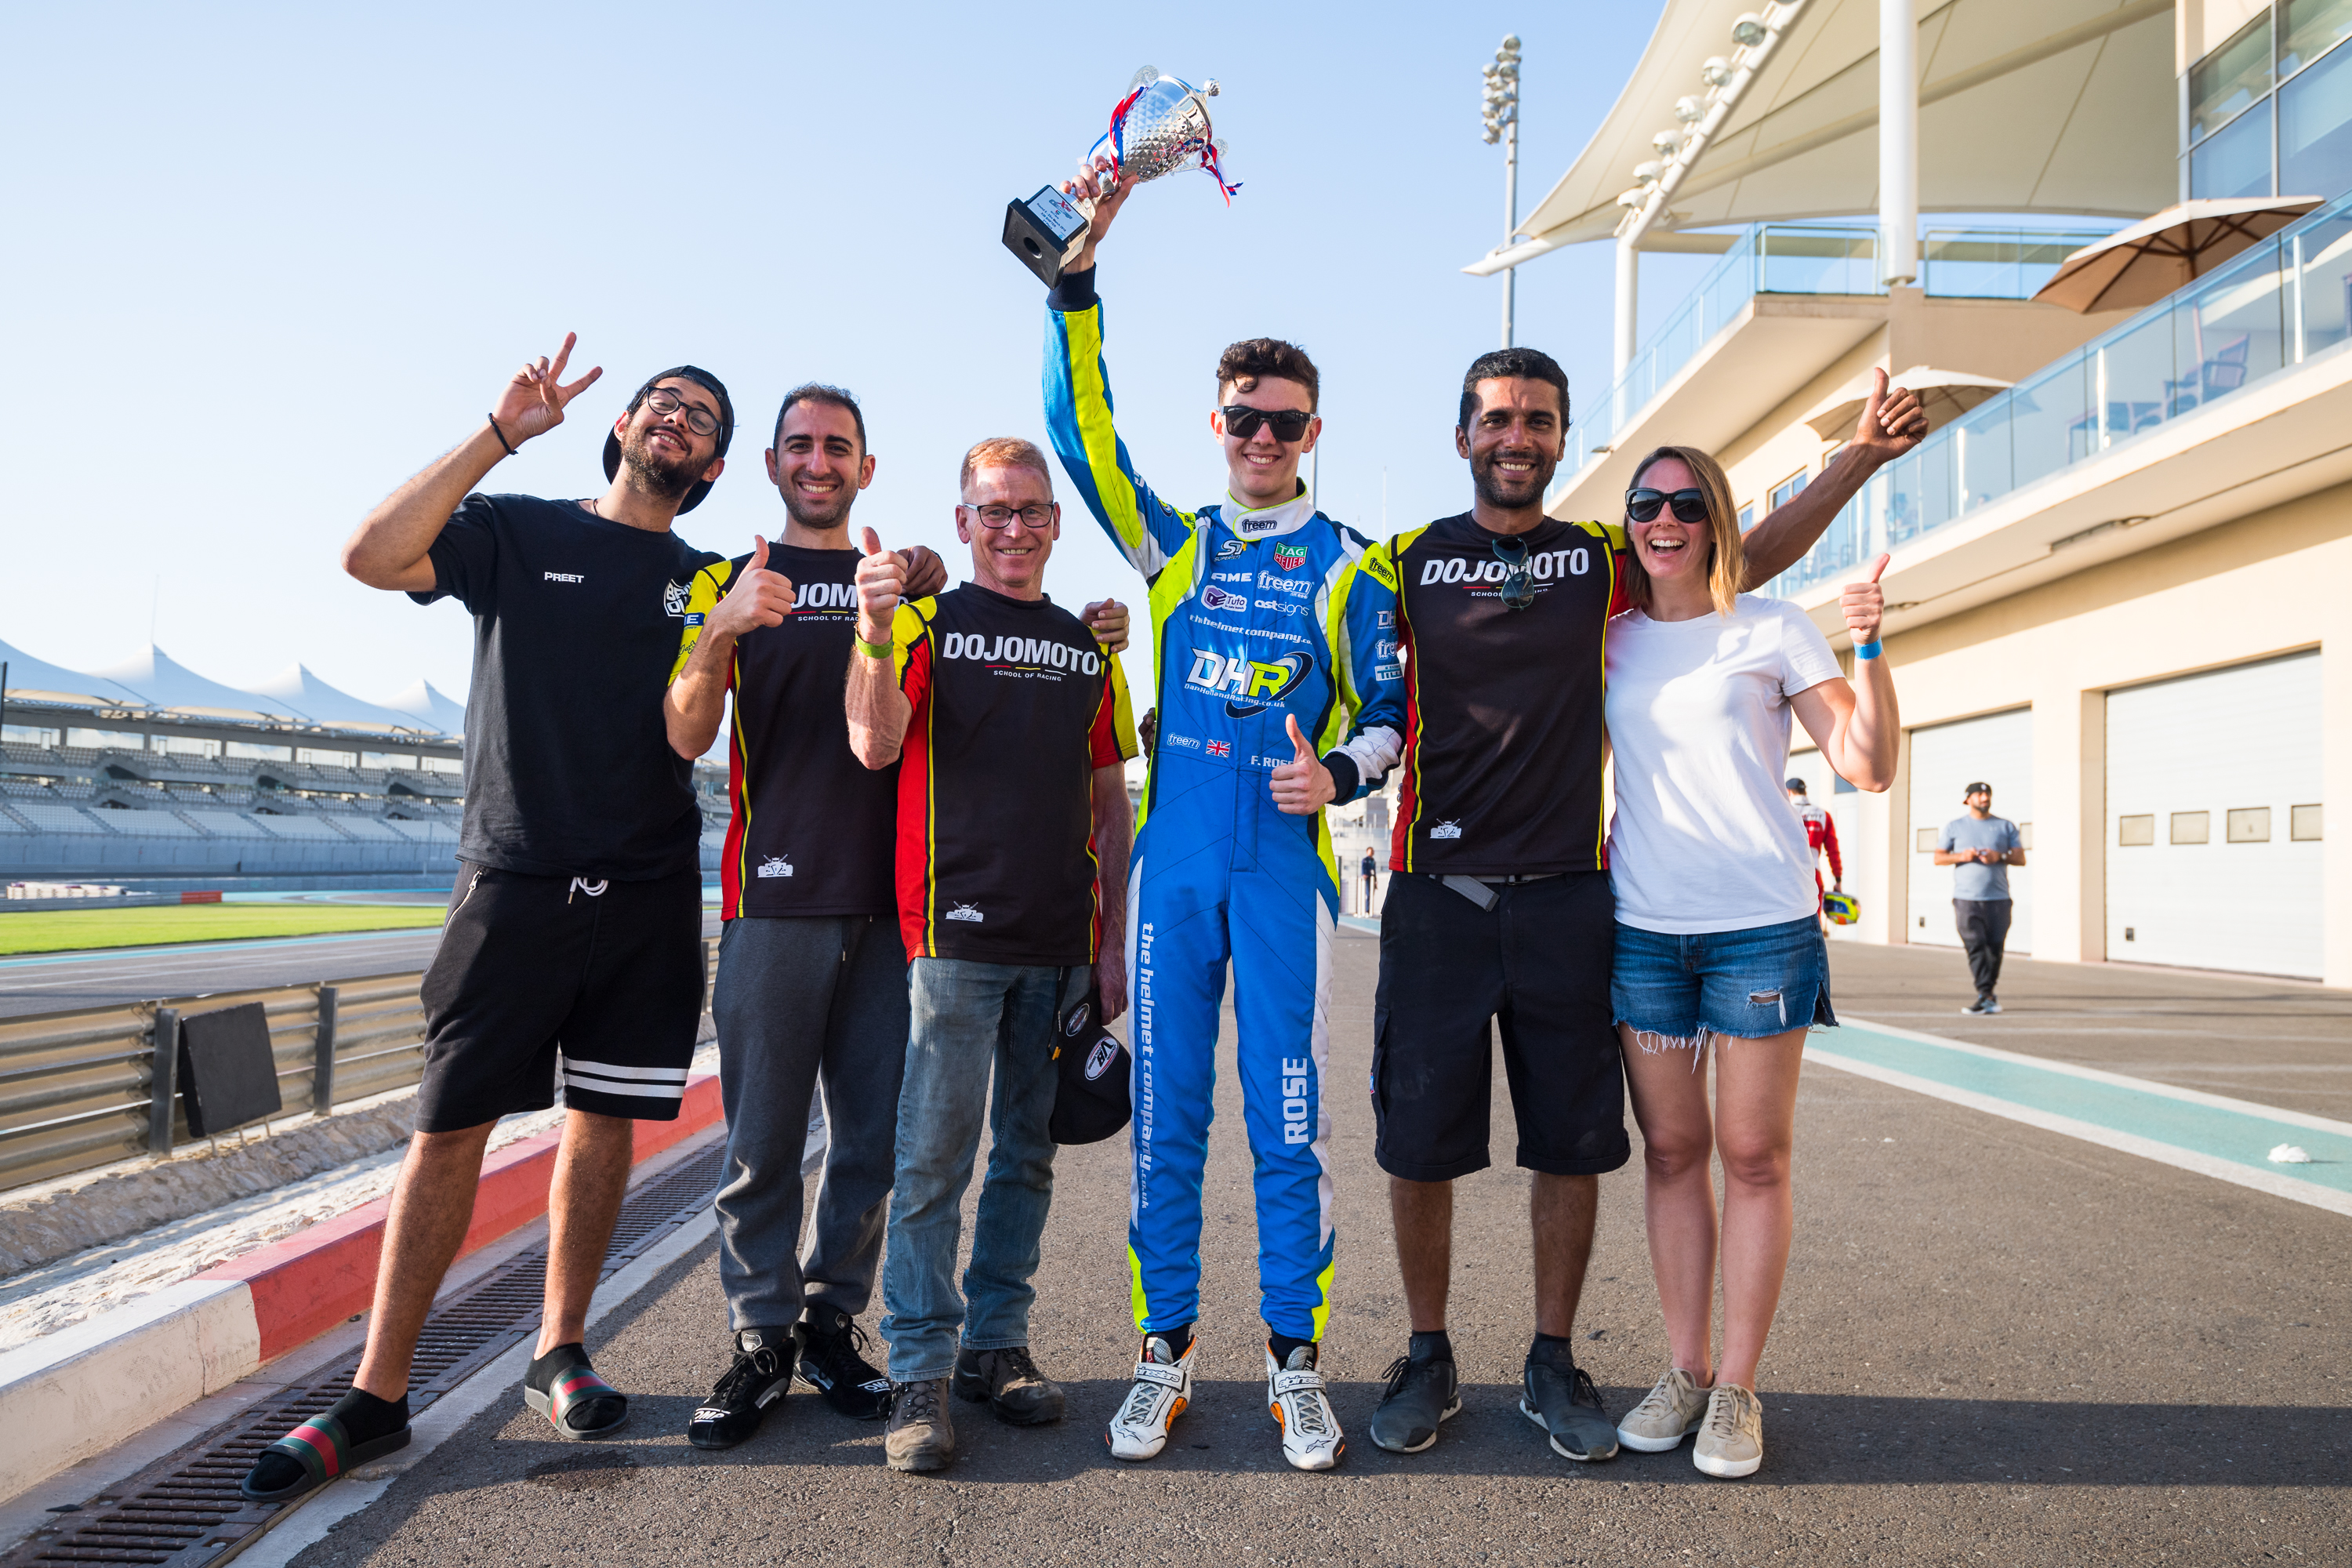 Fraser Rose 3rd pace at Yas